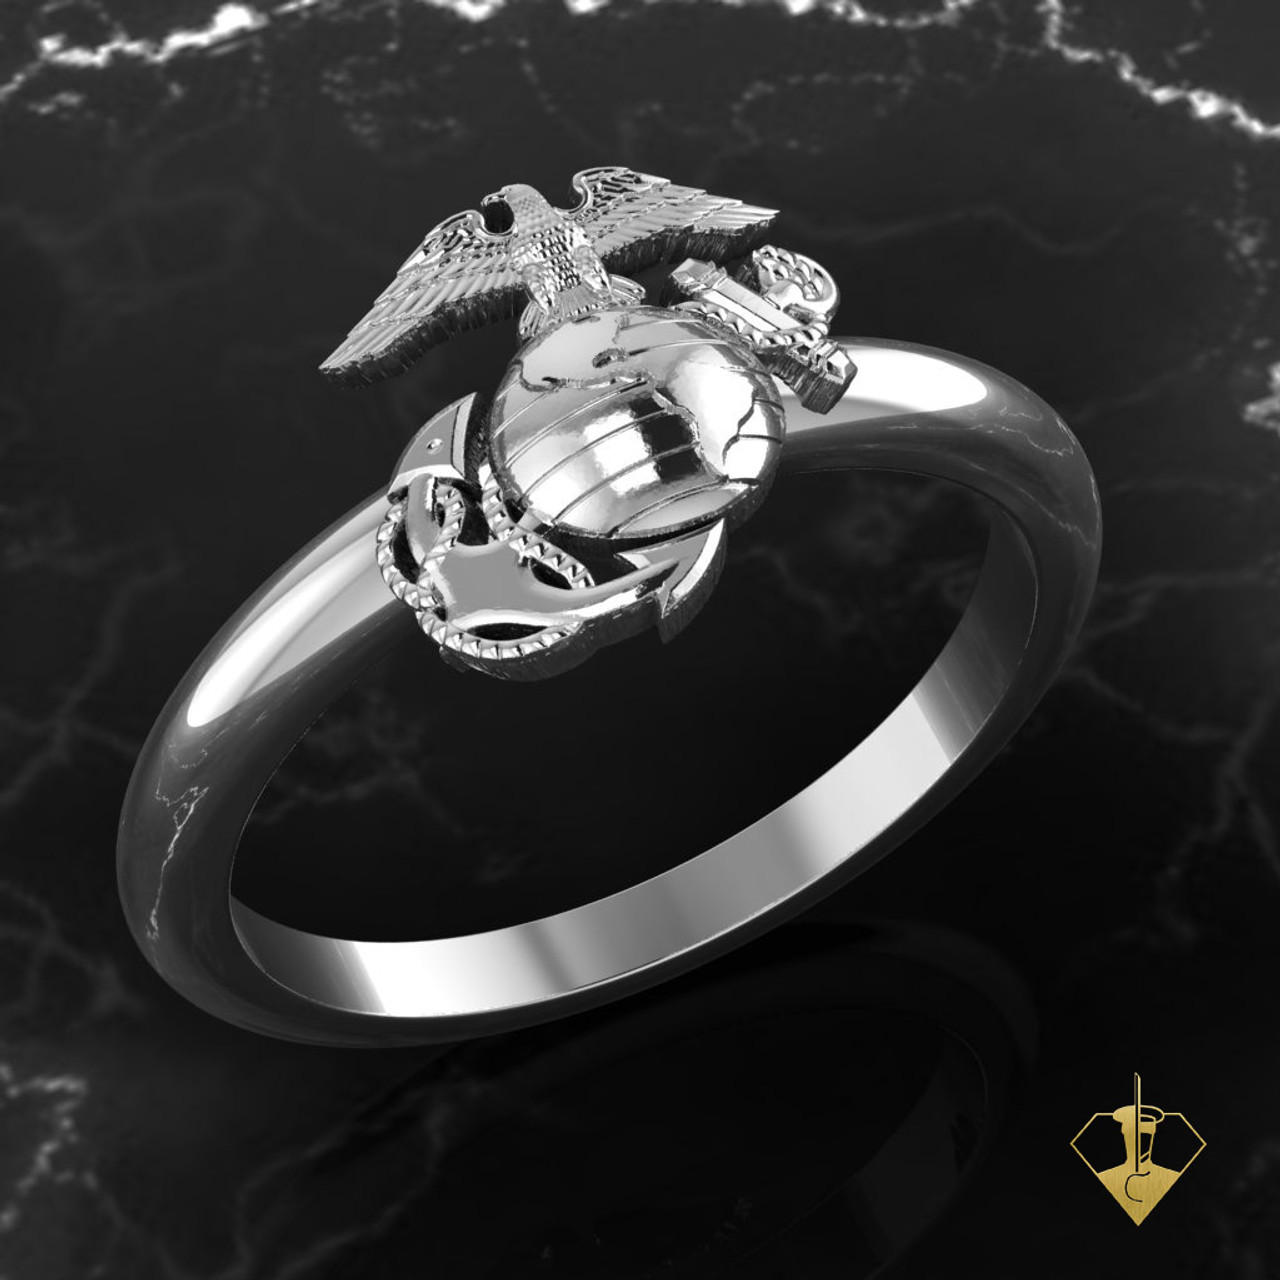 EAGLE GLOBE ANCHOR USMC WOMAN MARINES RING WHITE GOLD OR SILVER